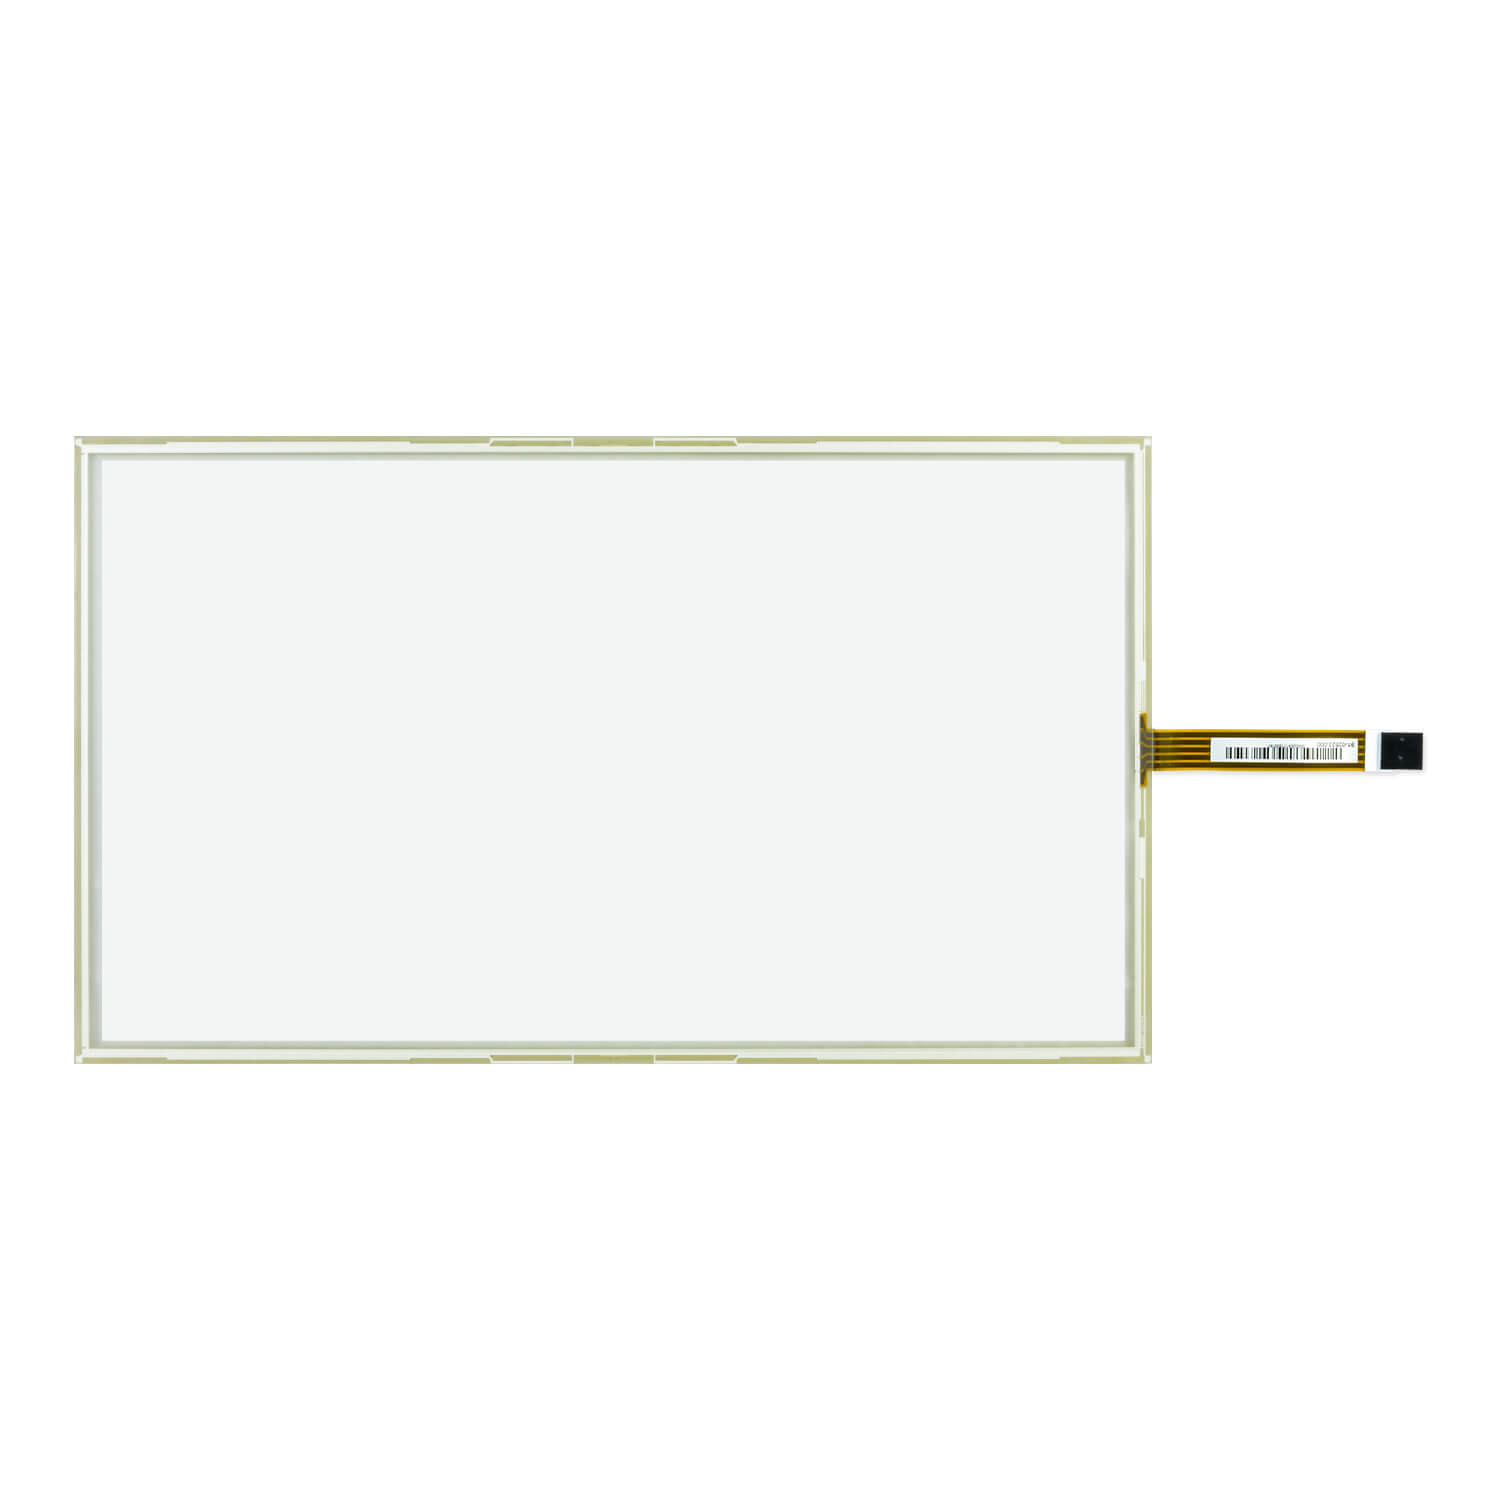 RTP15.6-5W-AMT-2522-000 - resistive touch screen (15.6-inch, 4:3 aspect ratio, 2.8 mm glass)